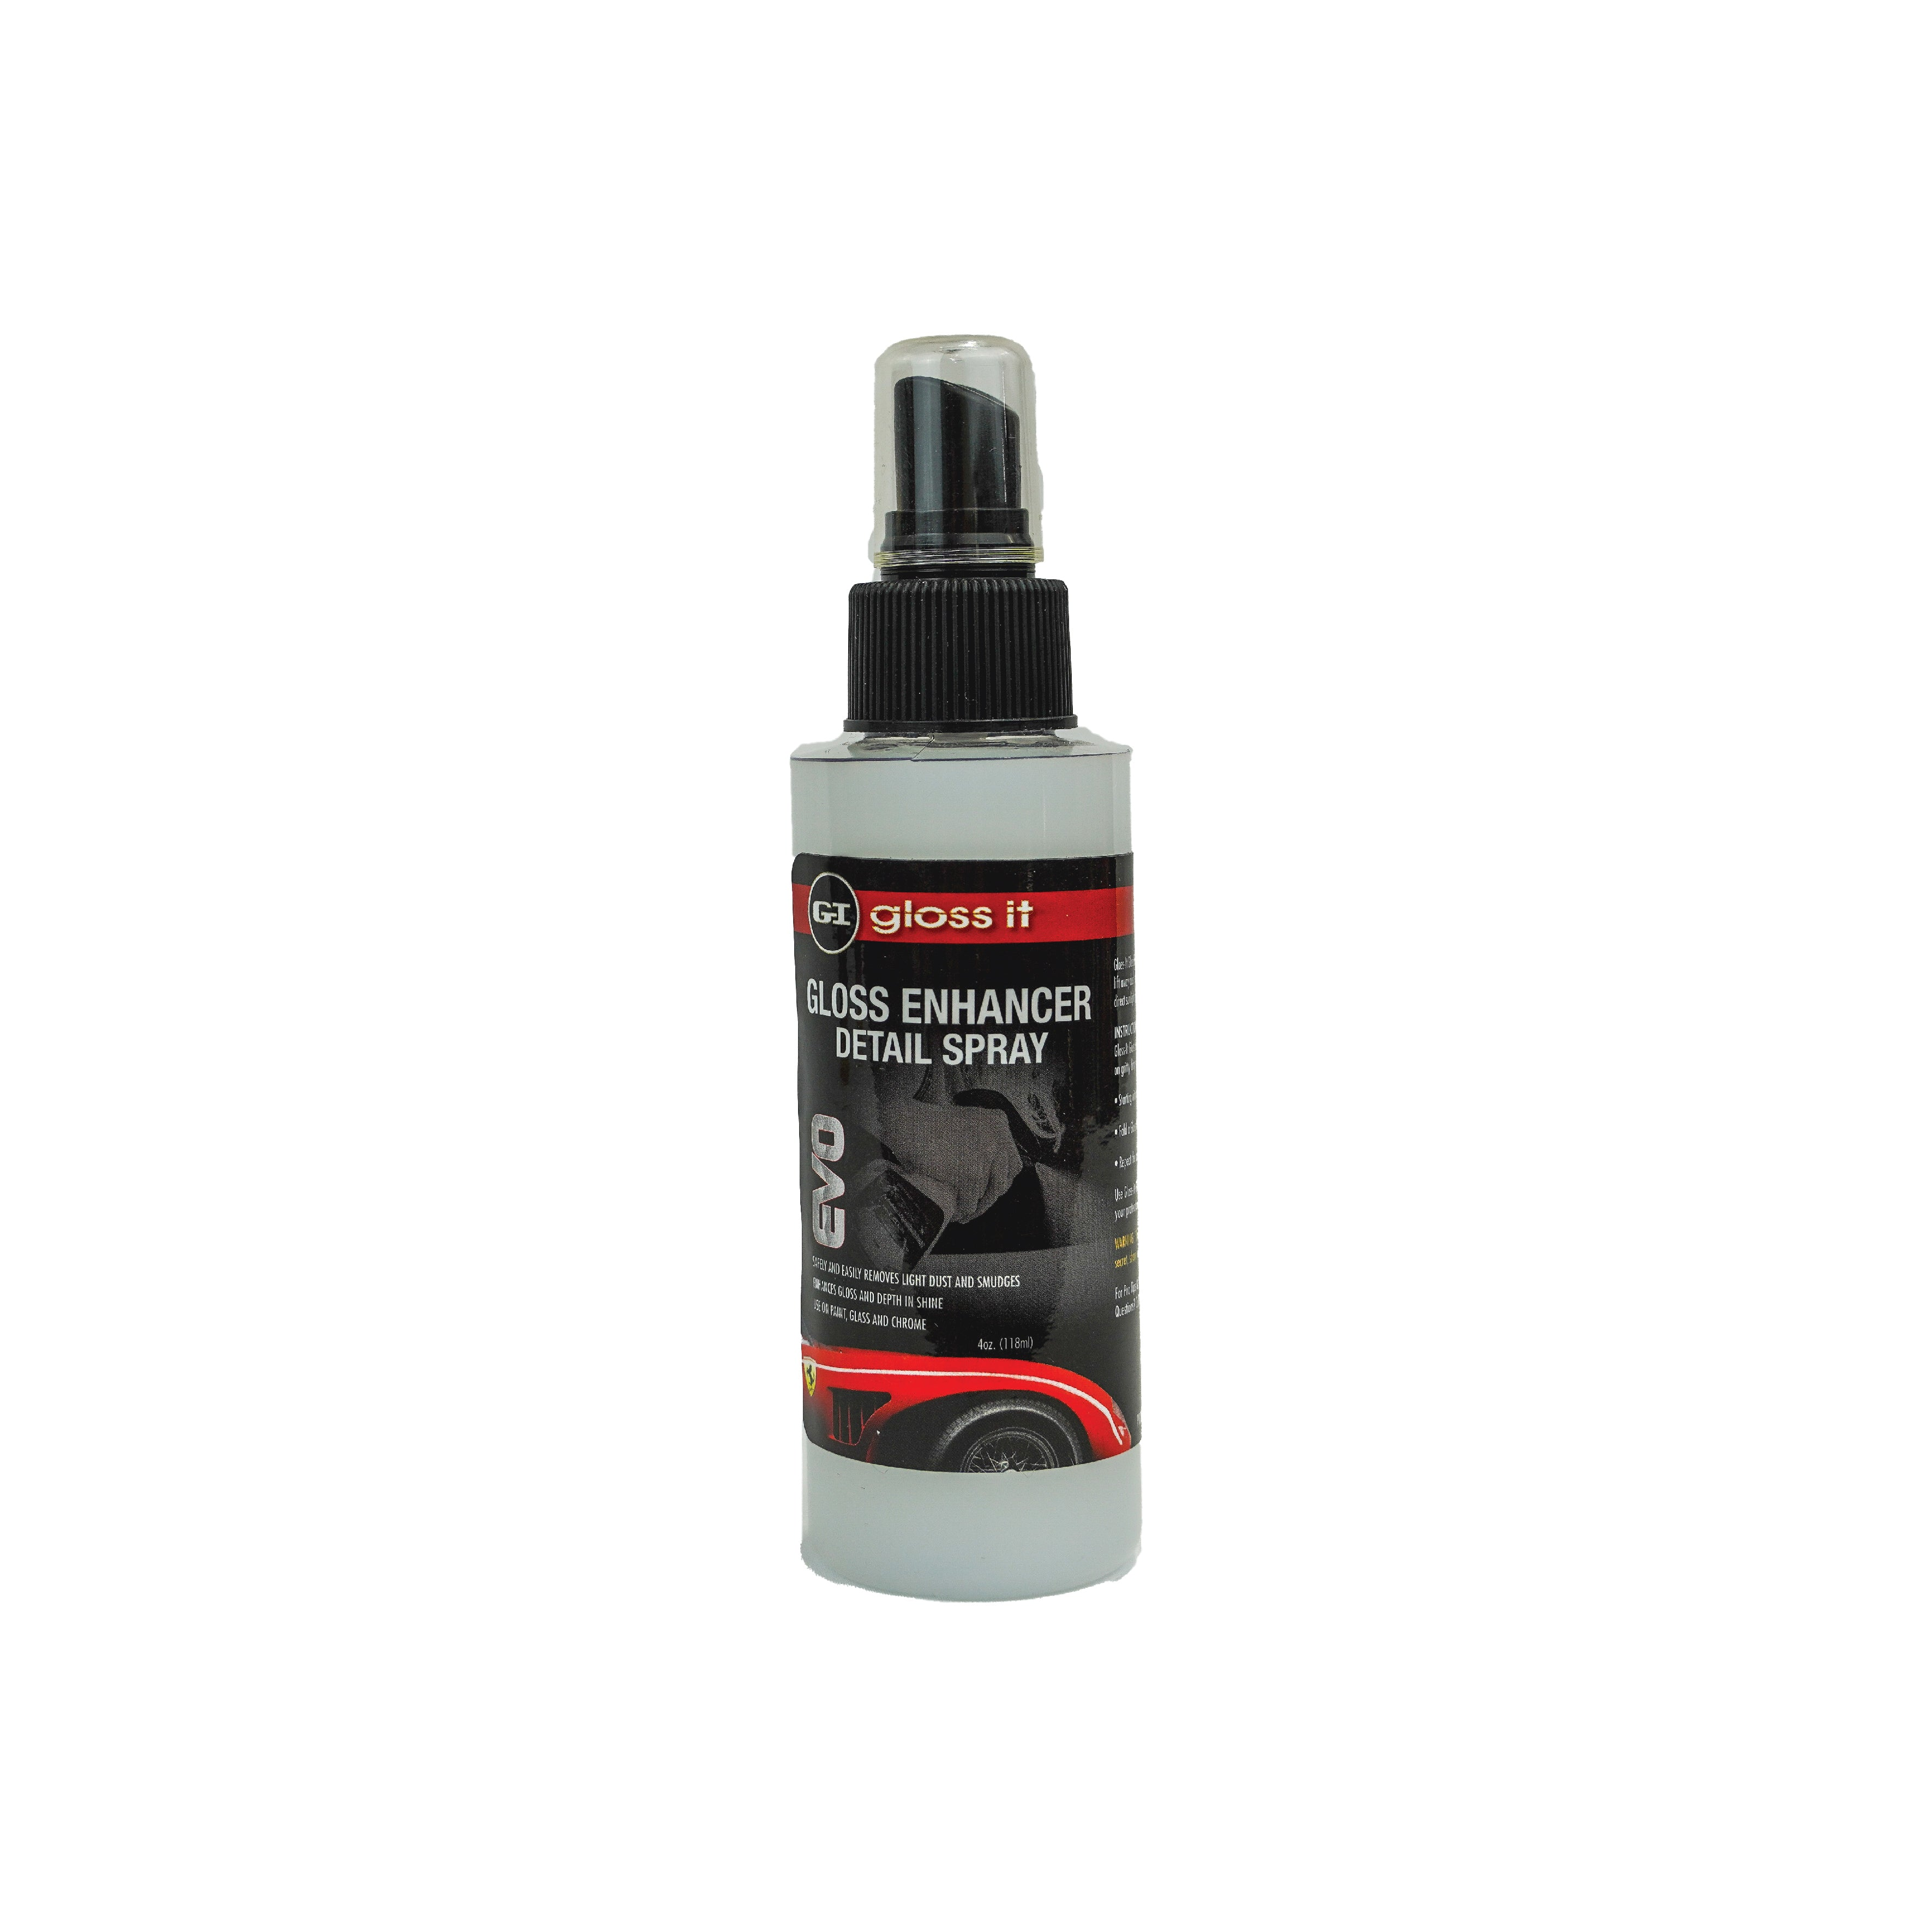 Gloss Enhancer Detail Spray